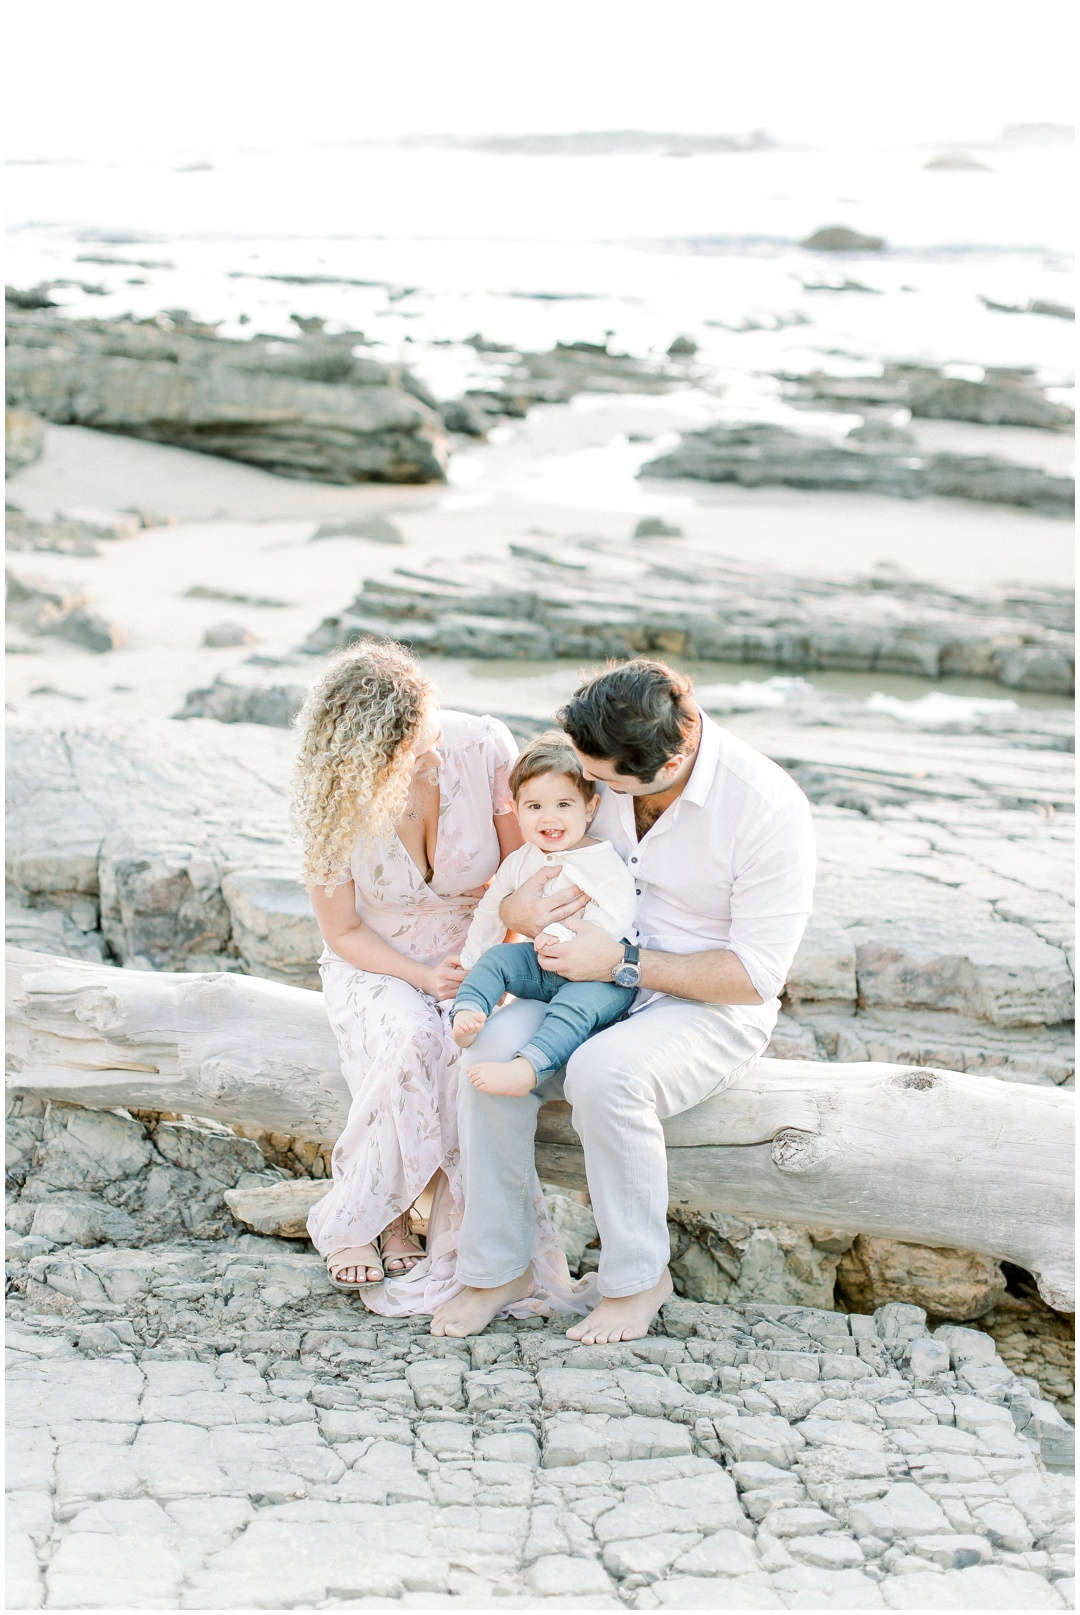 Newport_Beach_Family_Photographer_Newport_Beach_Newborn_Photographer_Orange_County_Family_Photographer_Cori_Kleckner_Photography_Huntington_Beach_San_Clemente_Family_Session_Photography__2447.jpg